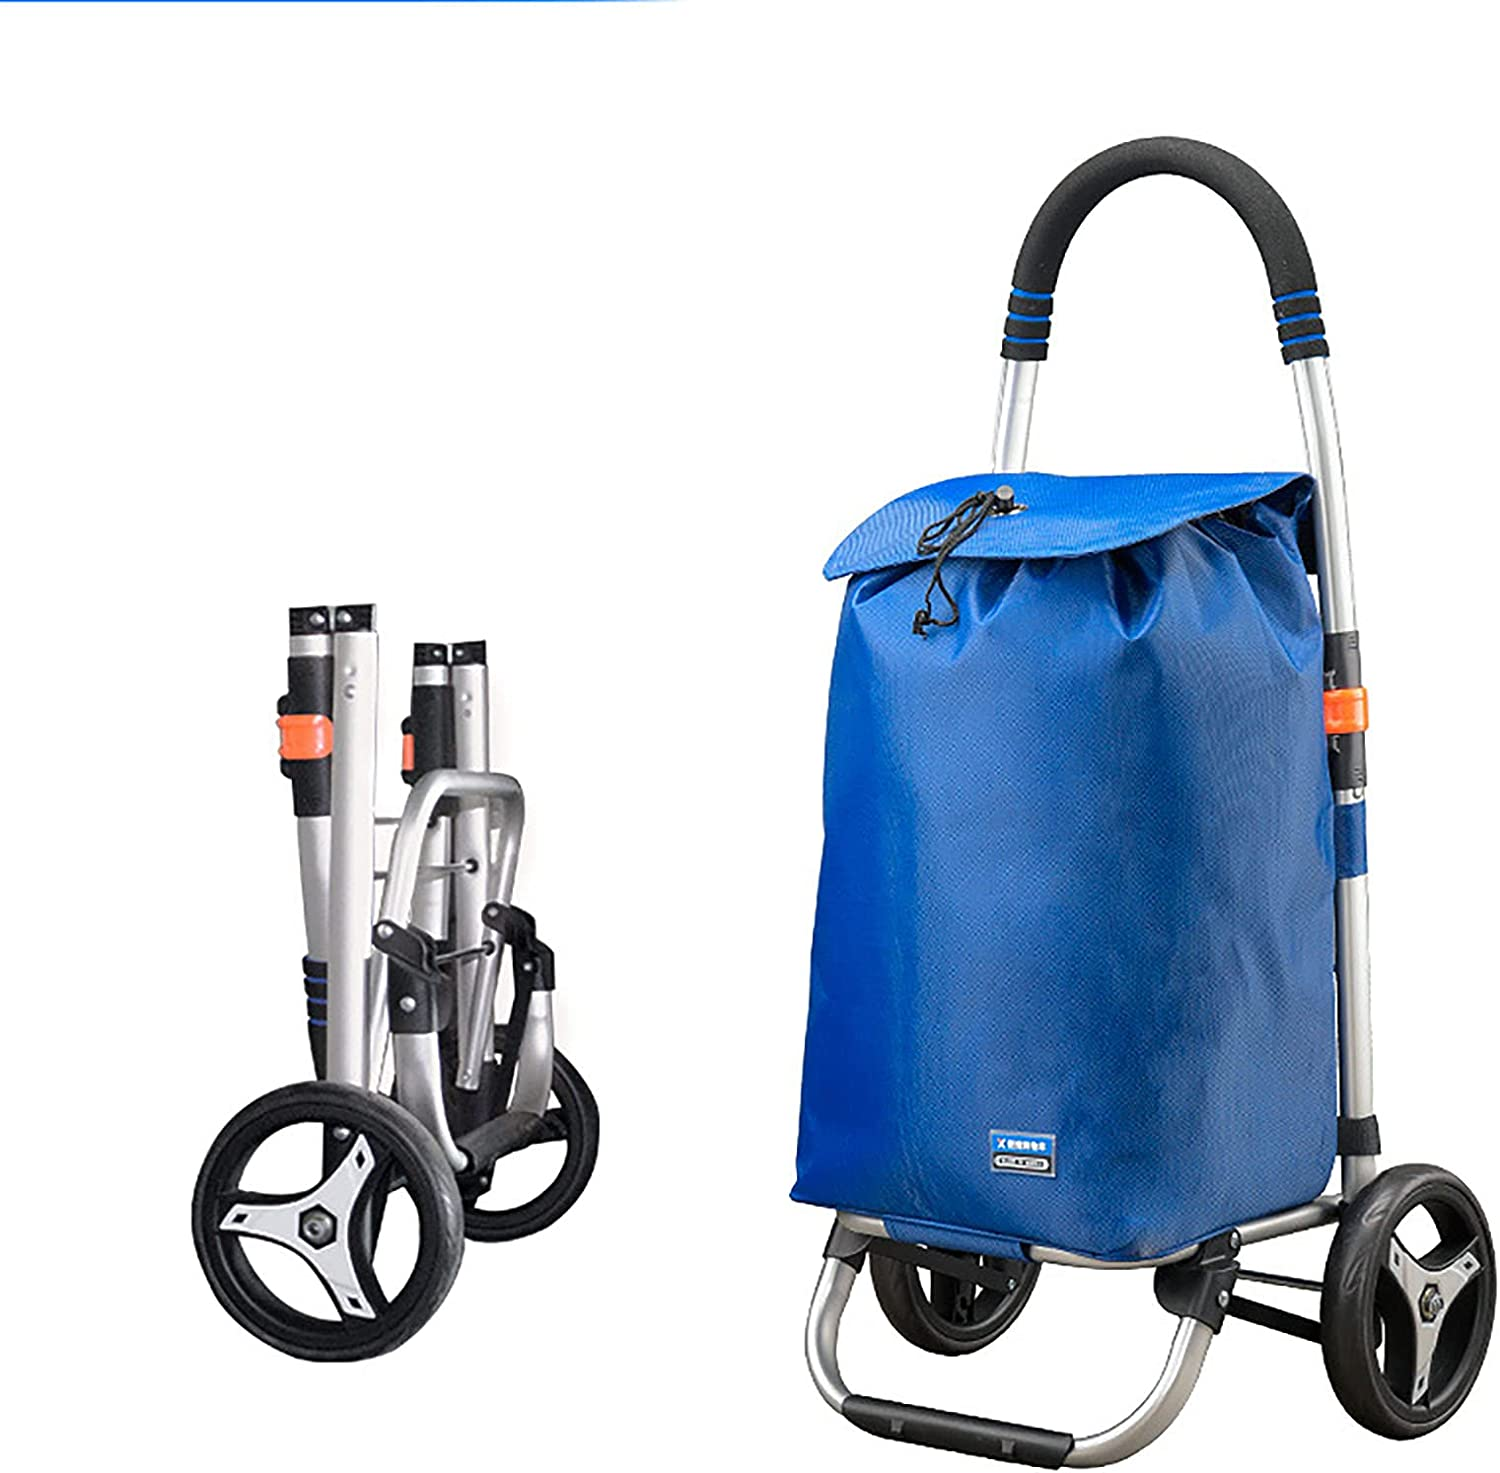 FVIWSJ Shopping Cart Manufacturer OFFicial shop Collapsible Reusable B Trolley and List price